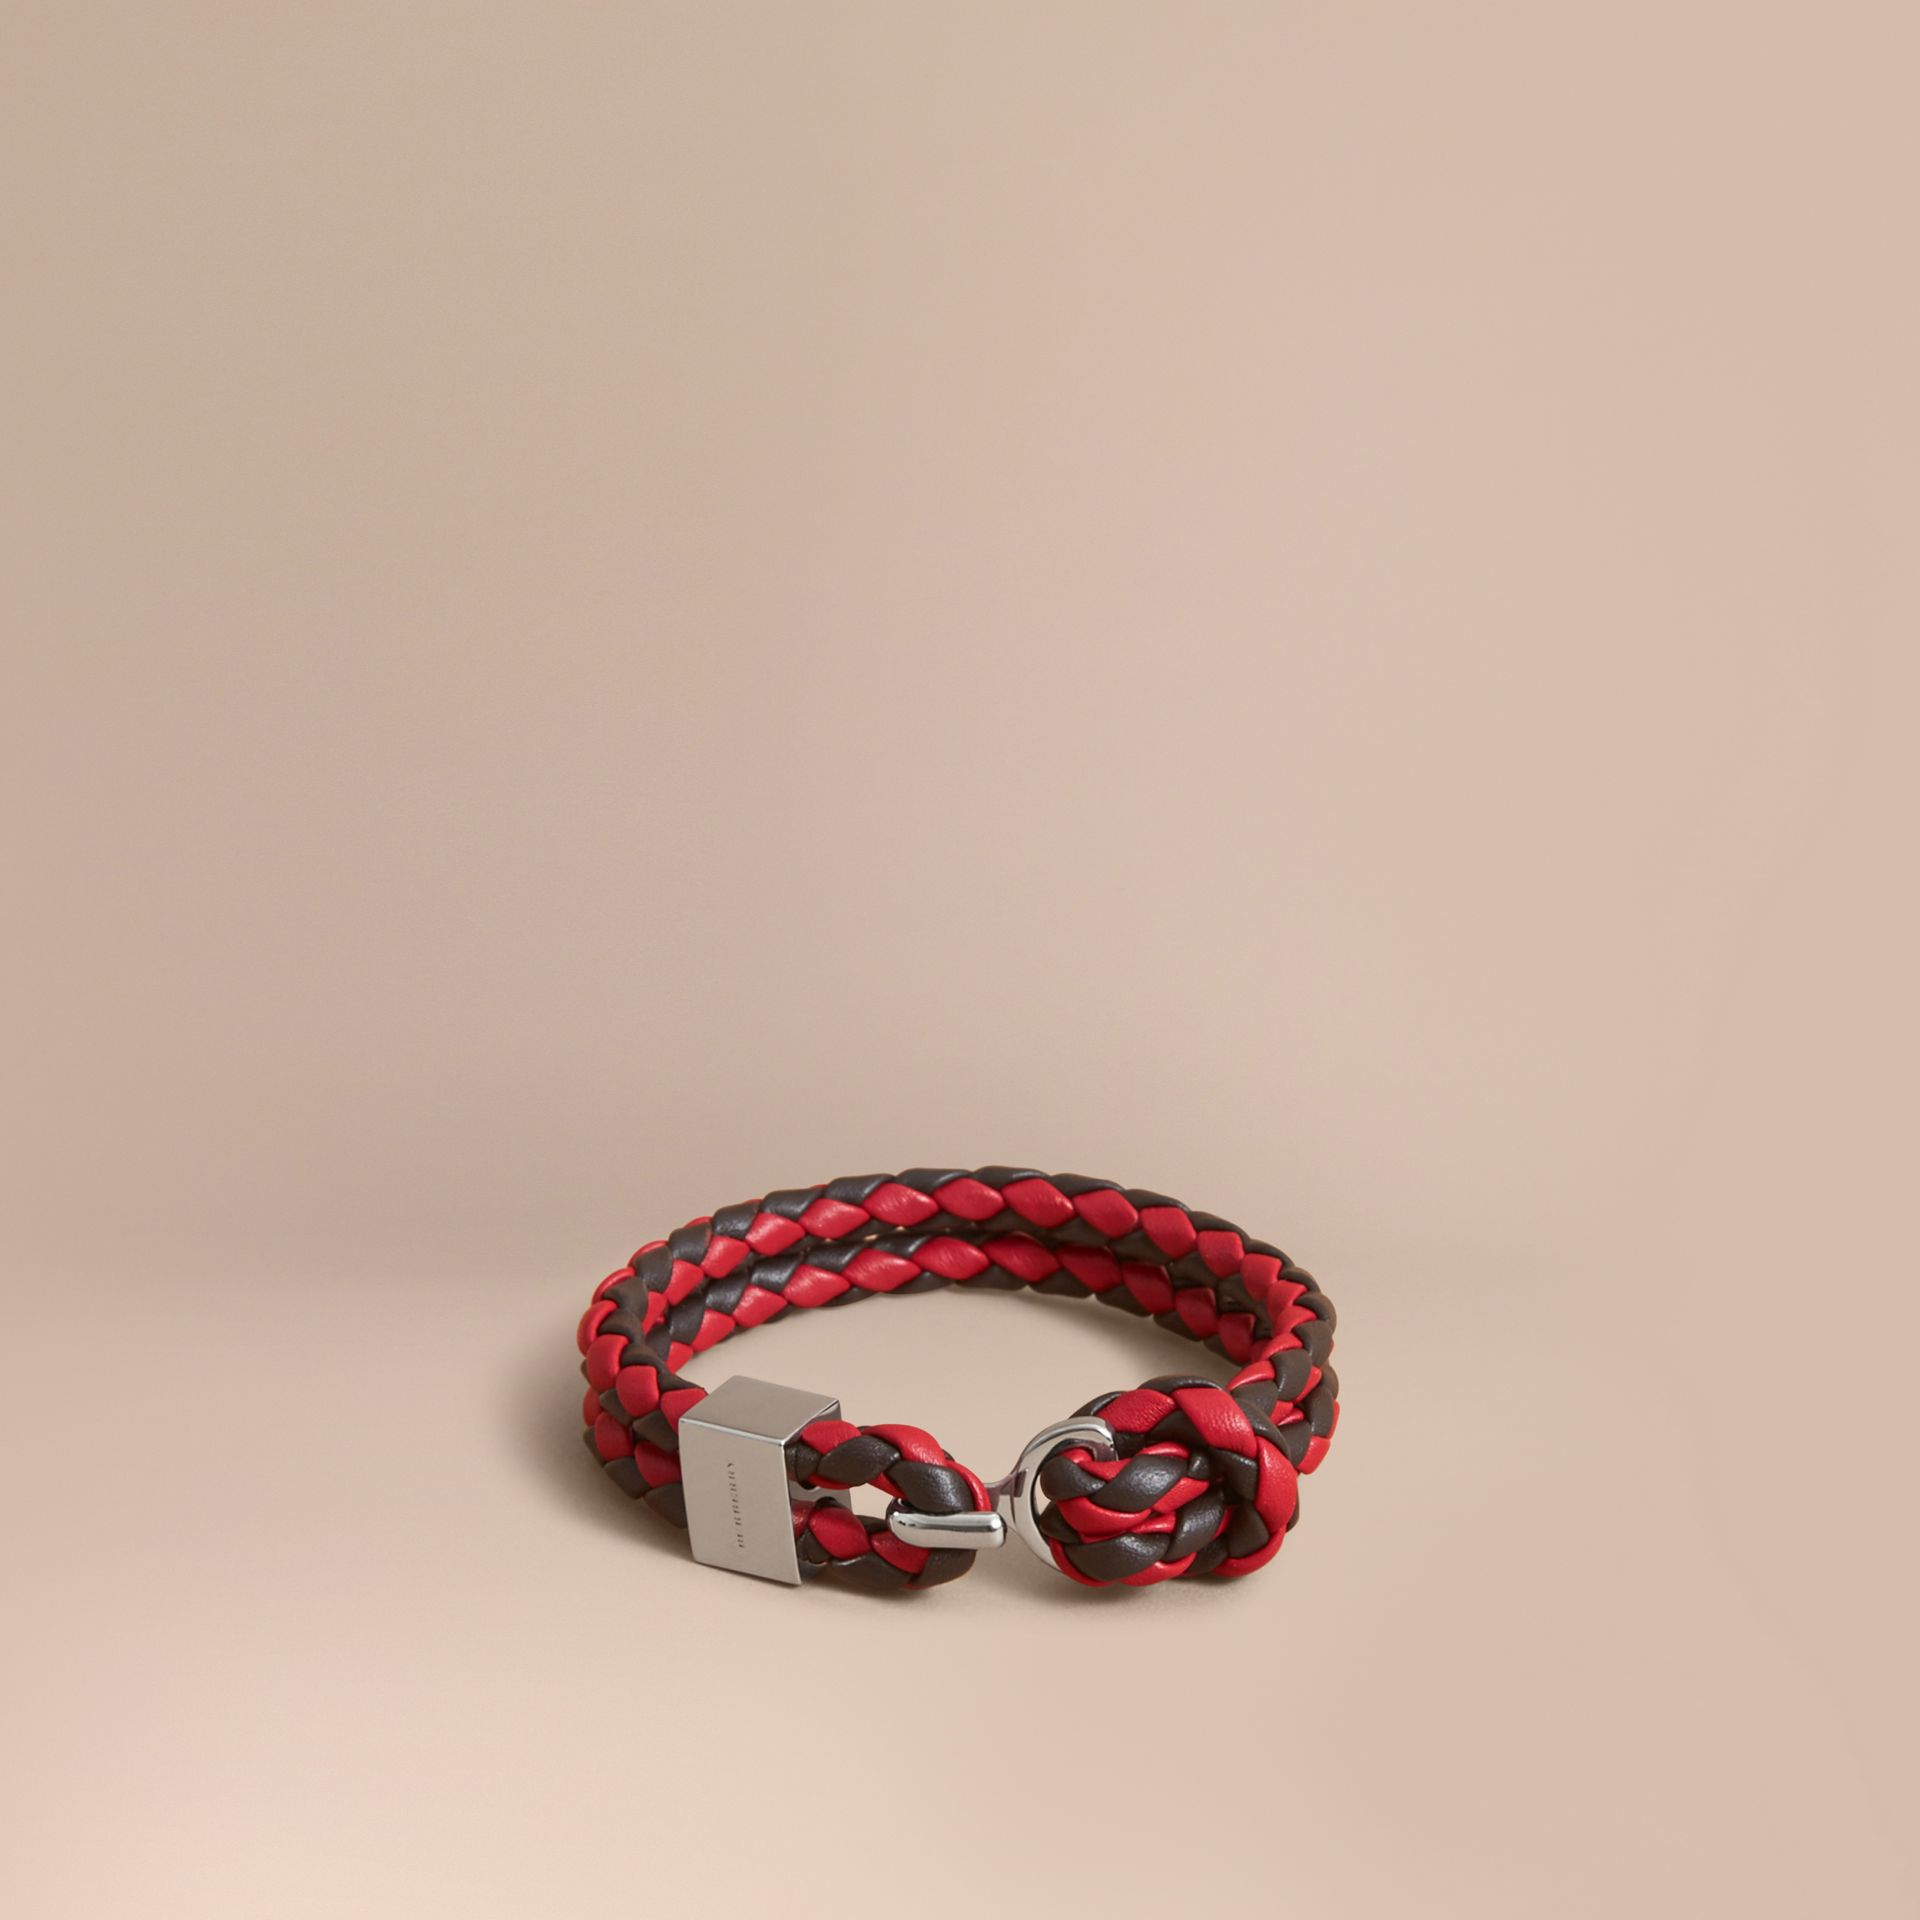 Two-tone Braided Leather Bracelet in Peppercorn/coral Red - Men | Burberry Australia - gallery image 1